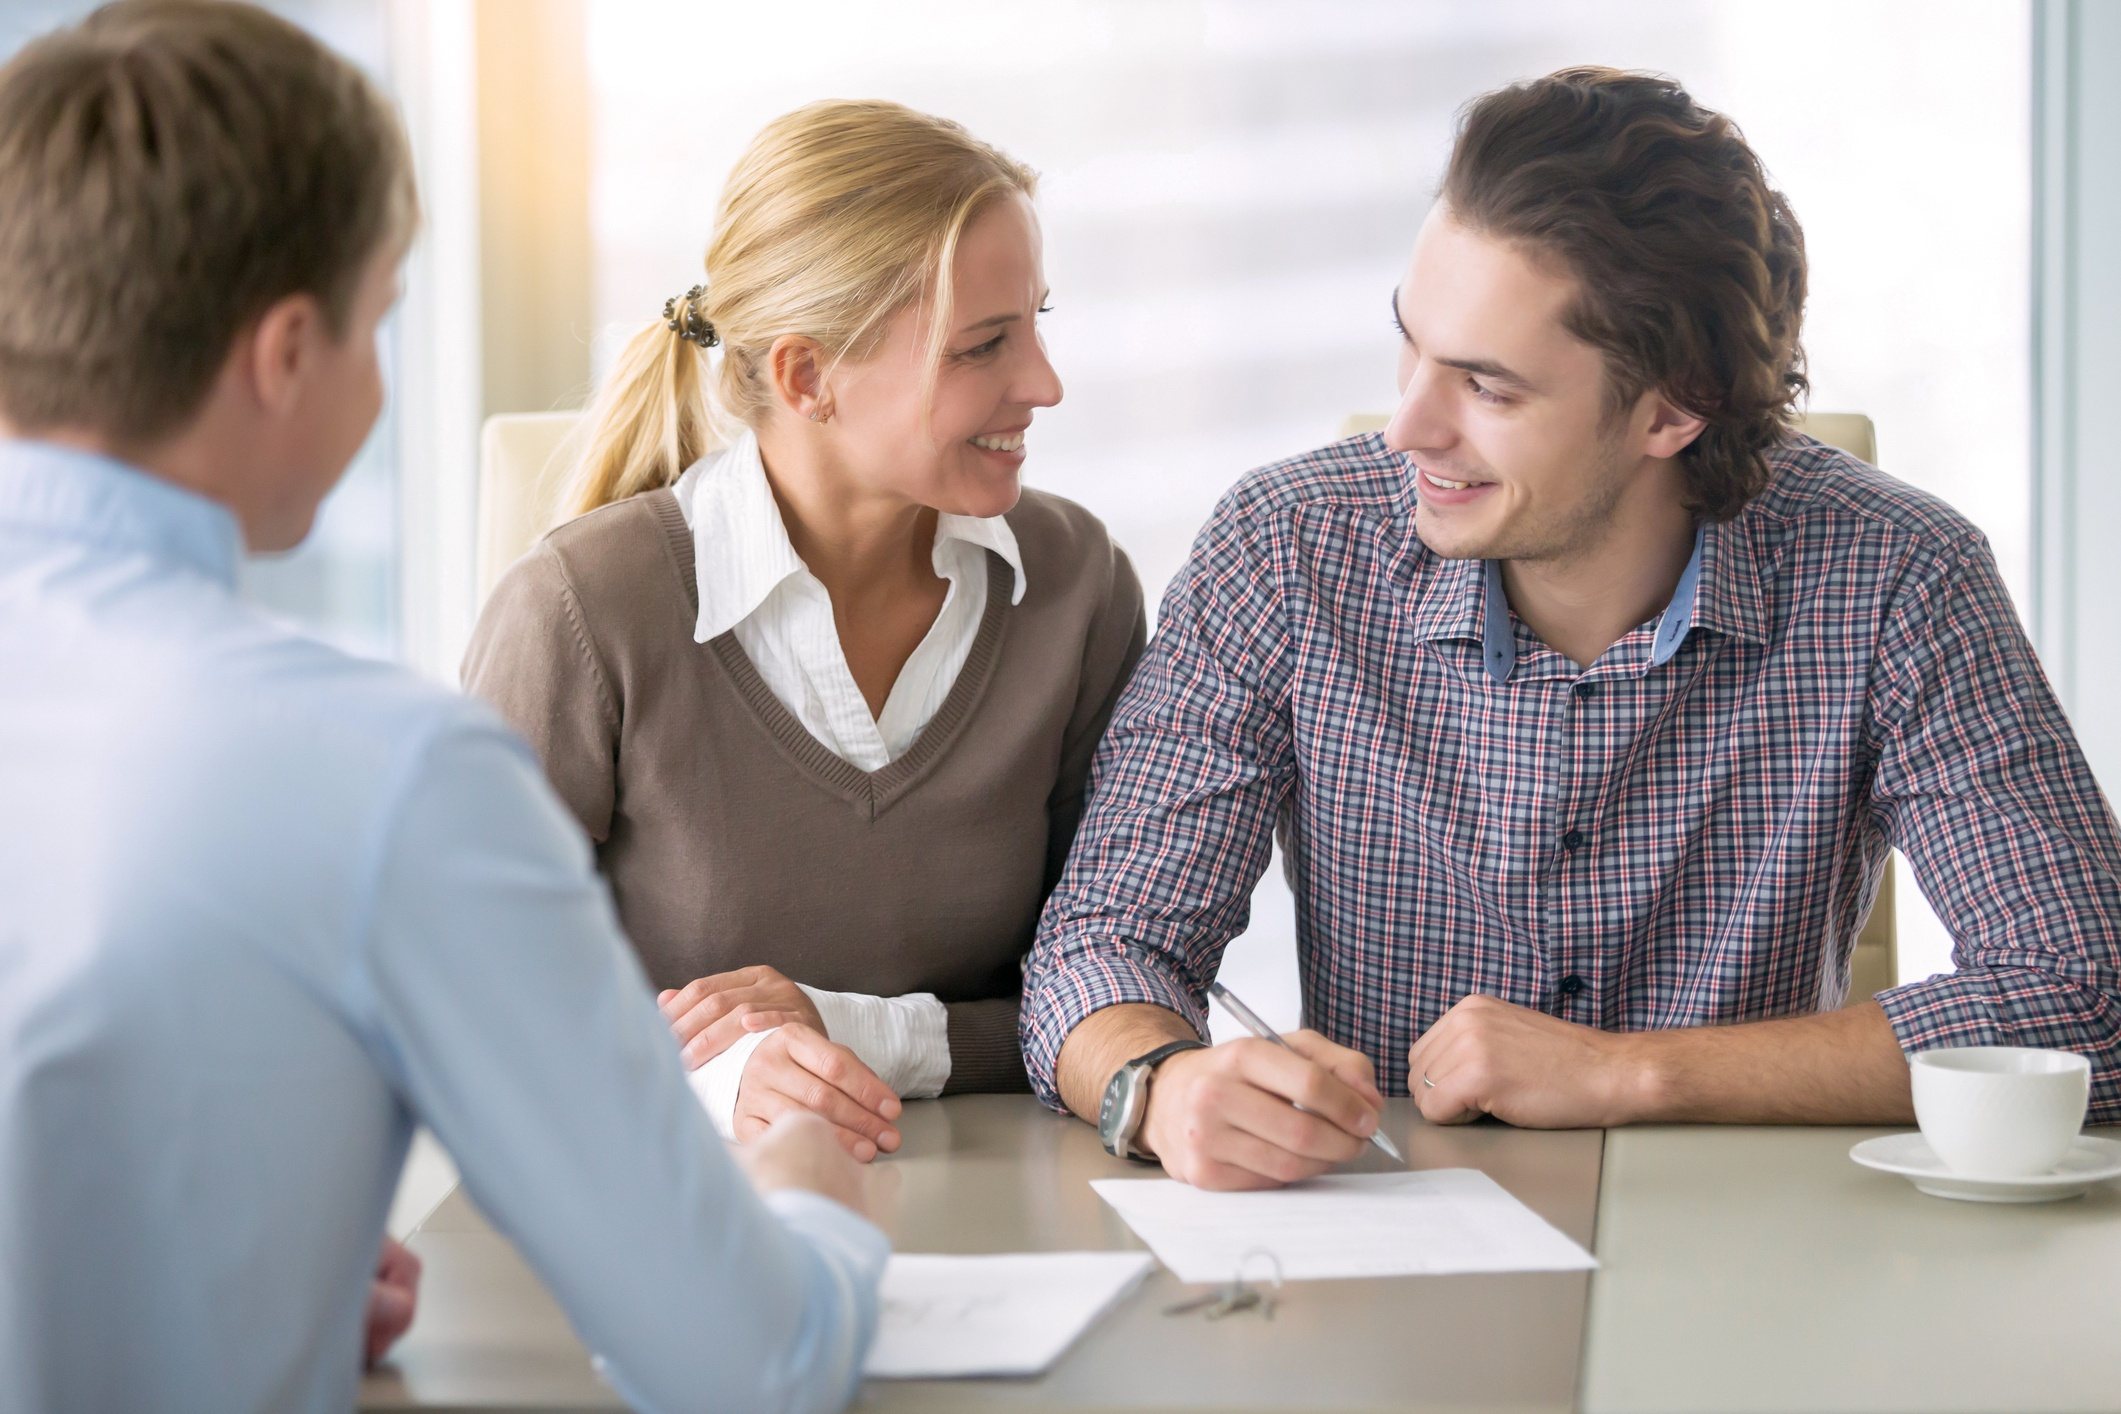 5 Questions to Ask an Insurance Agent for the Best Home Insurance Deals